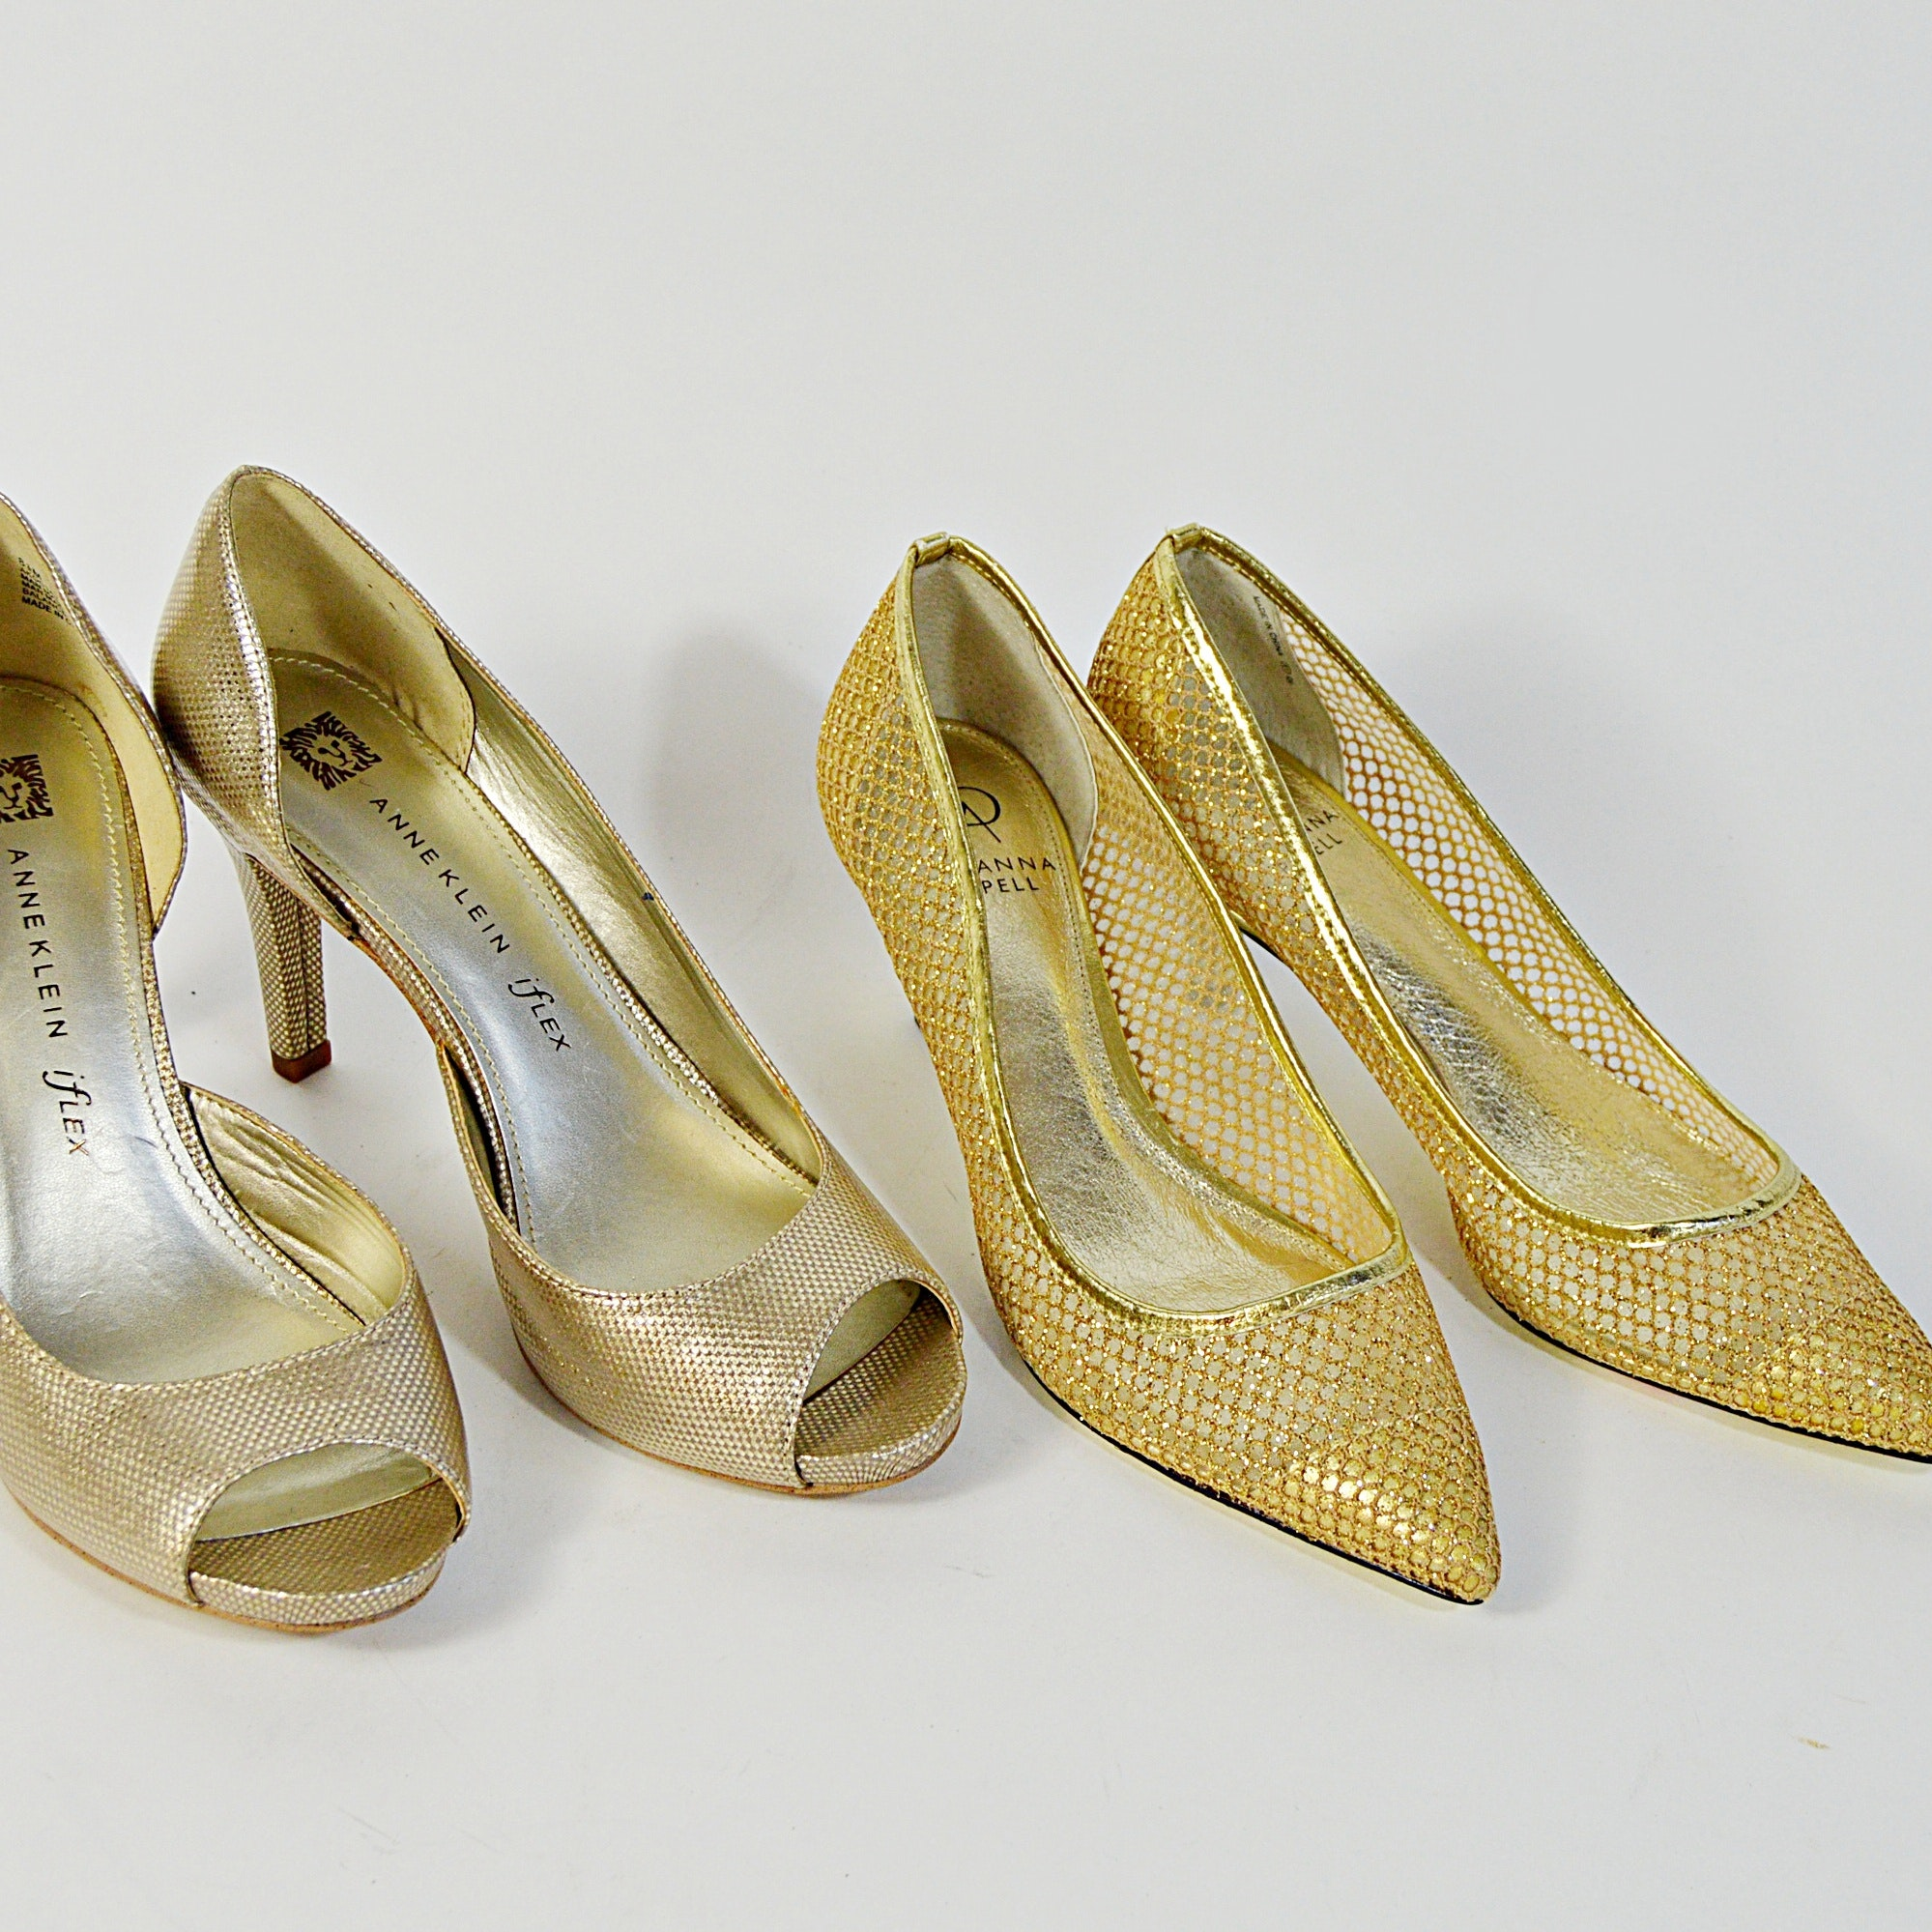 Anne Klein and Adrianna Papell Gold Tone Heels, 8.5M